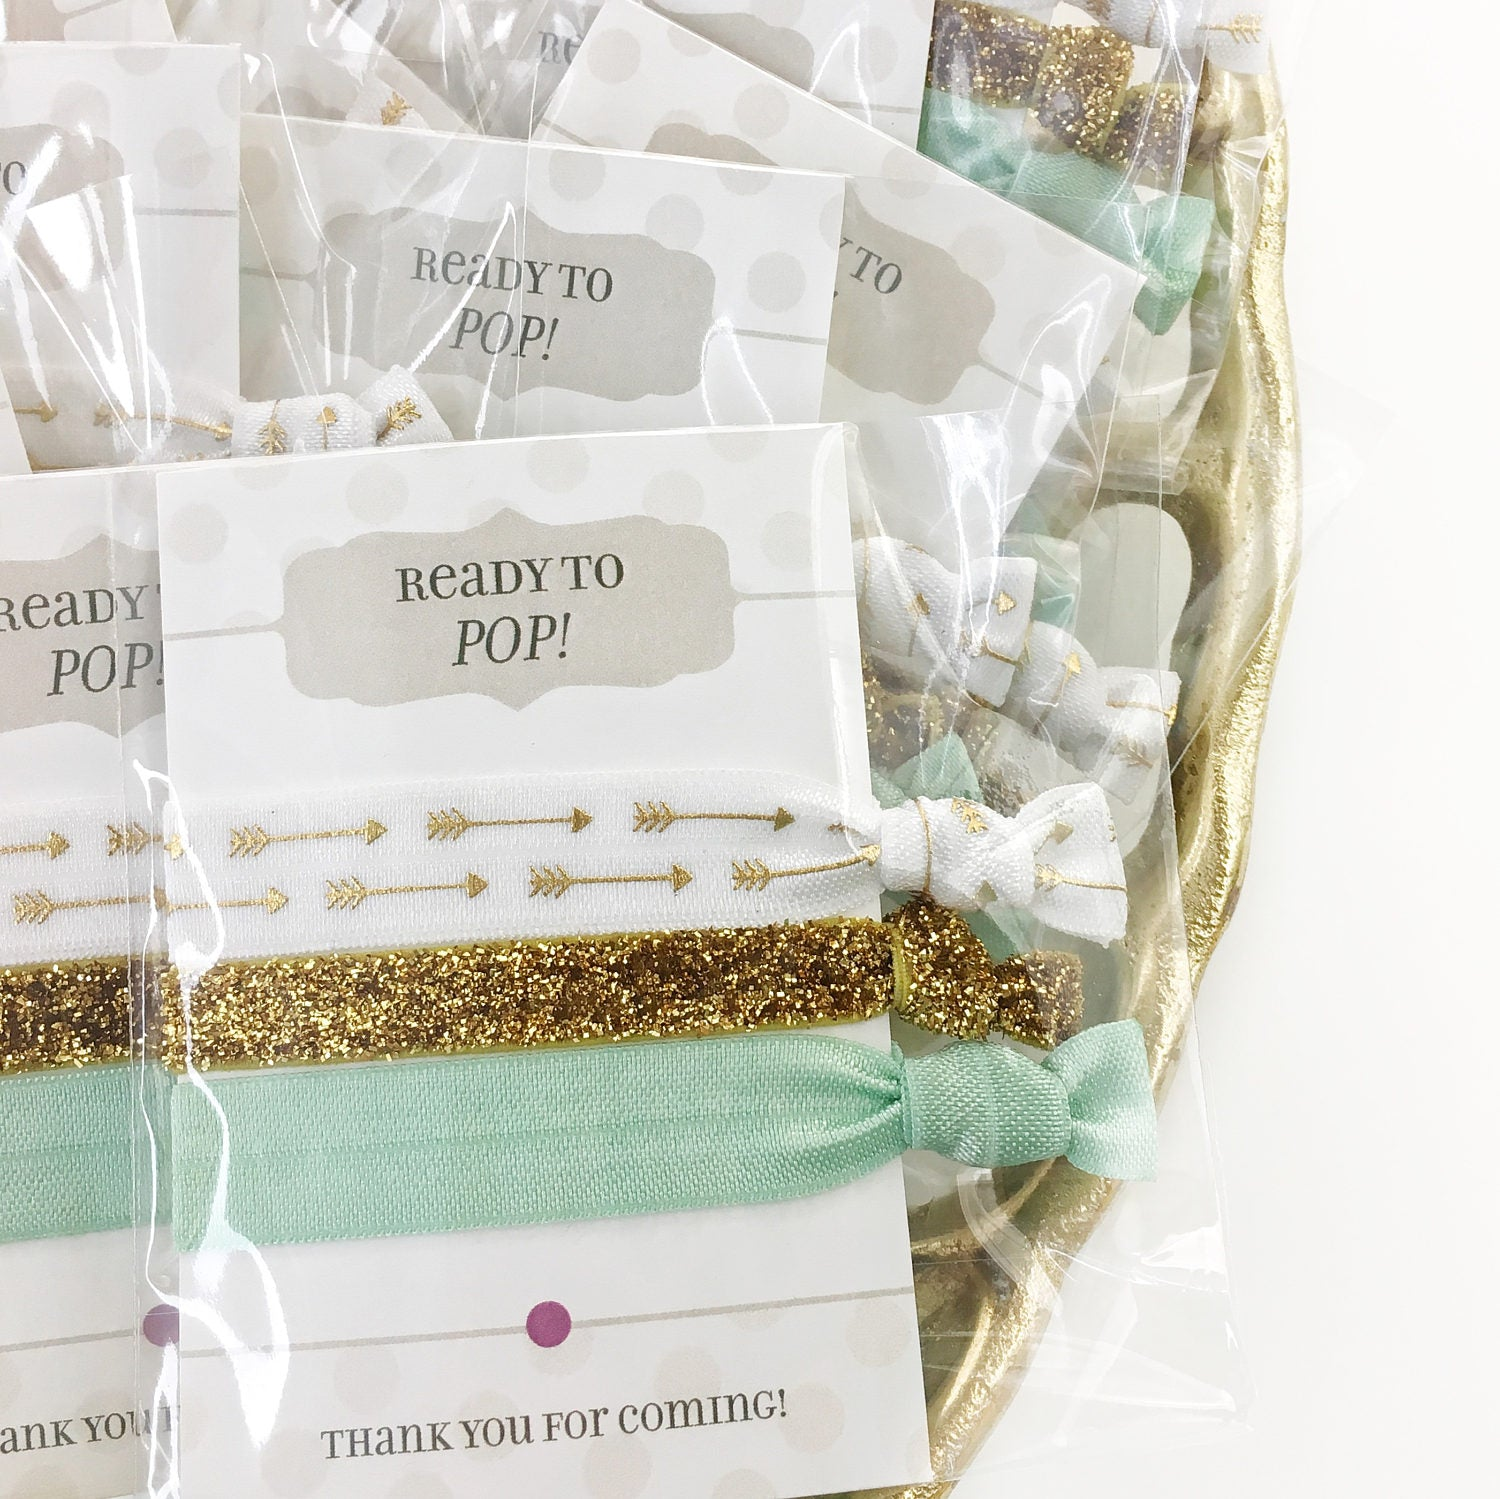 Ready To Pop Baby Shower Favors Gender Neutral Mint And Gold Favors